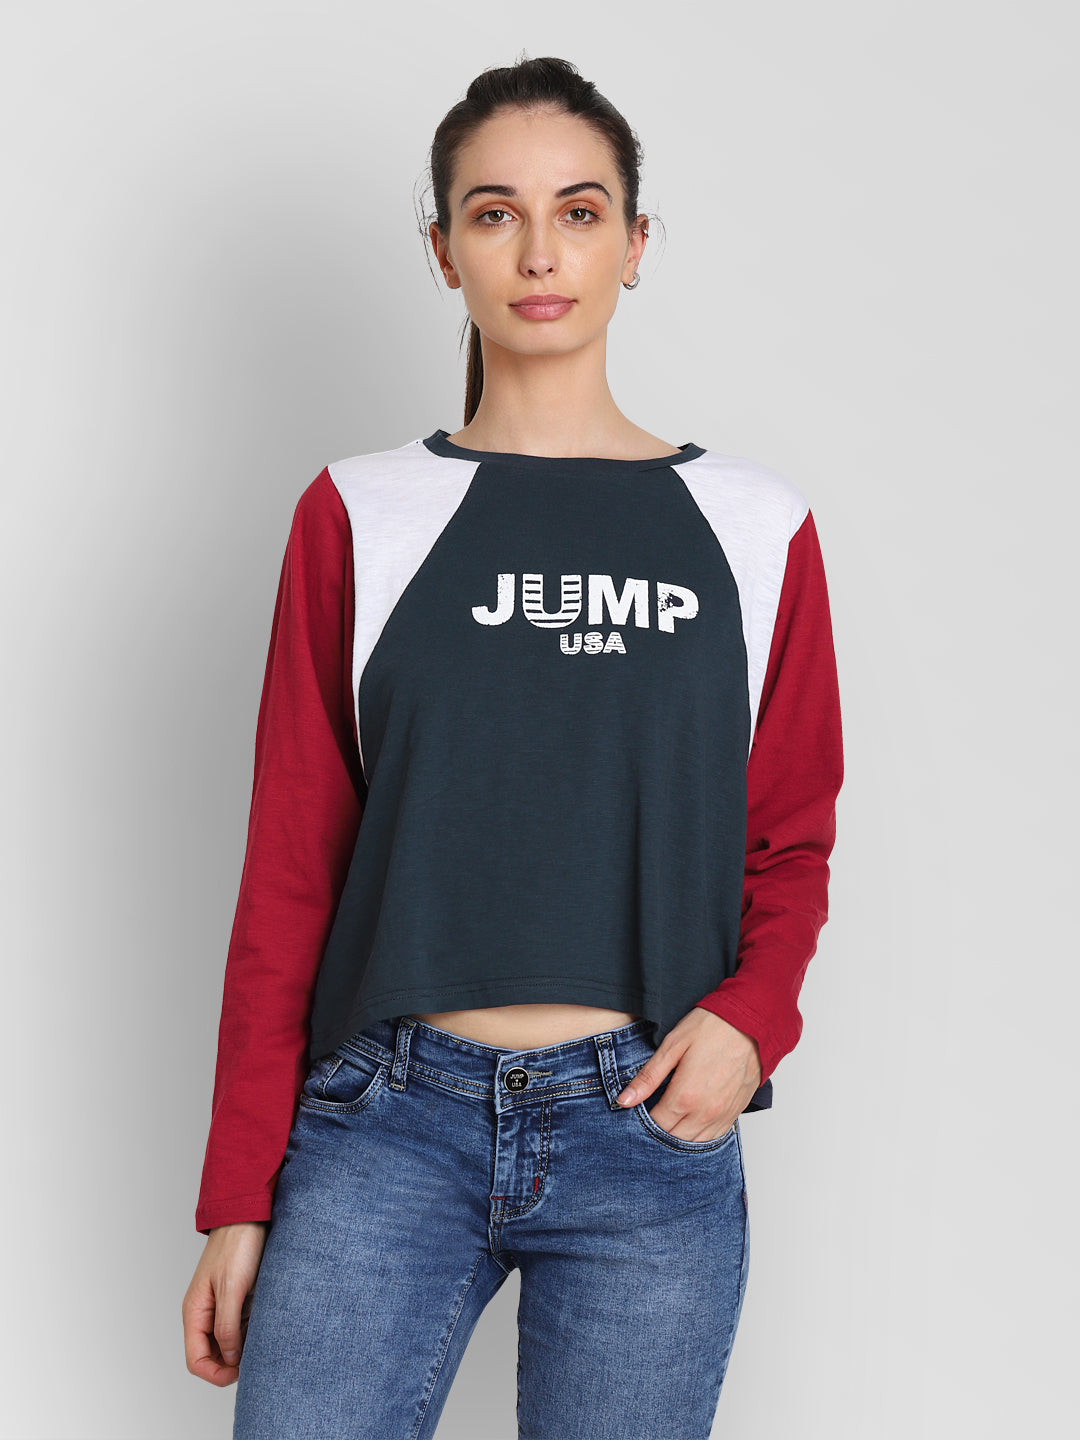 JUMP USA Women Navy Blue Self Design Crop Top